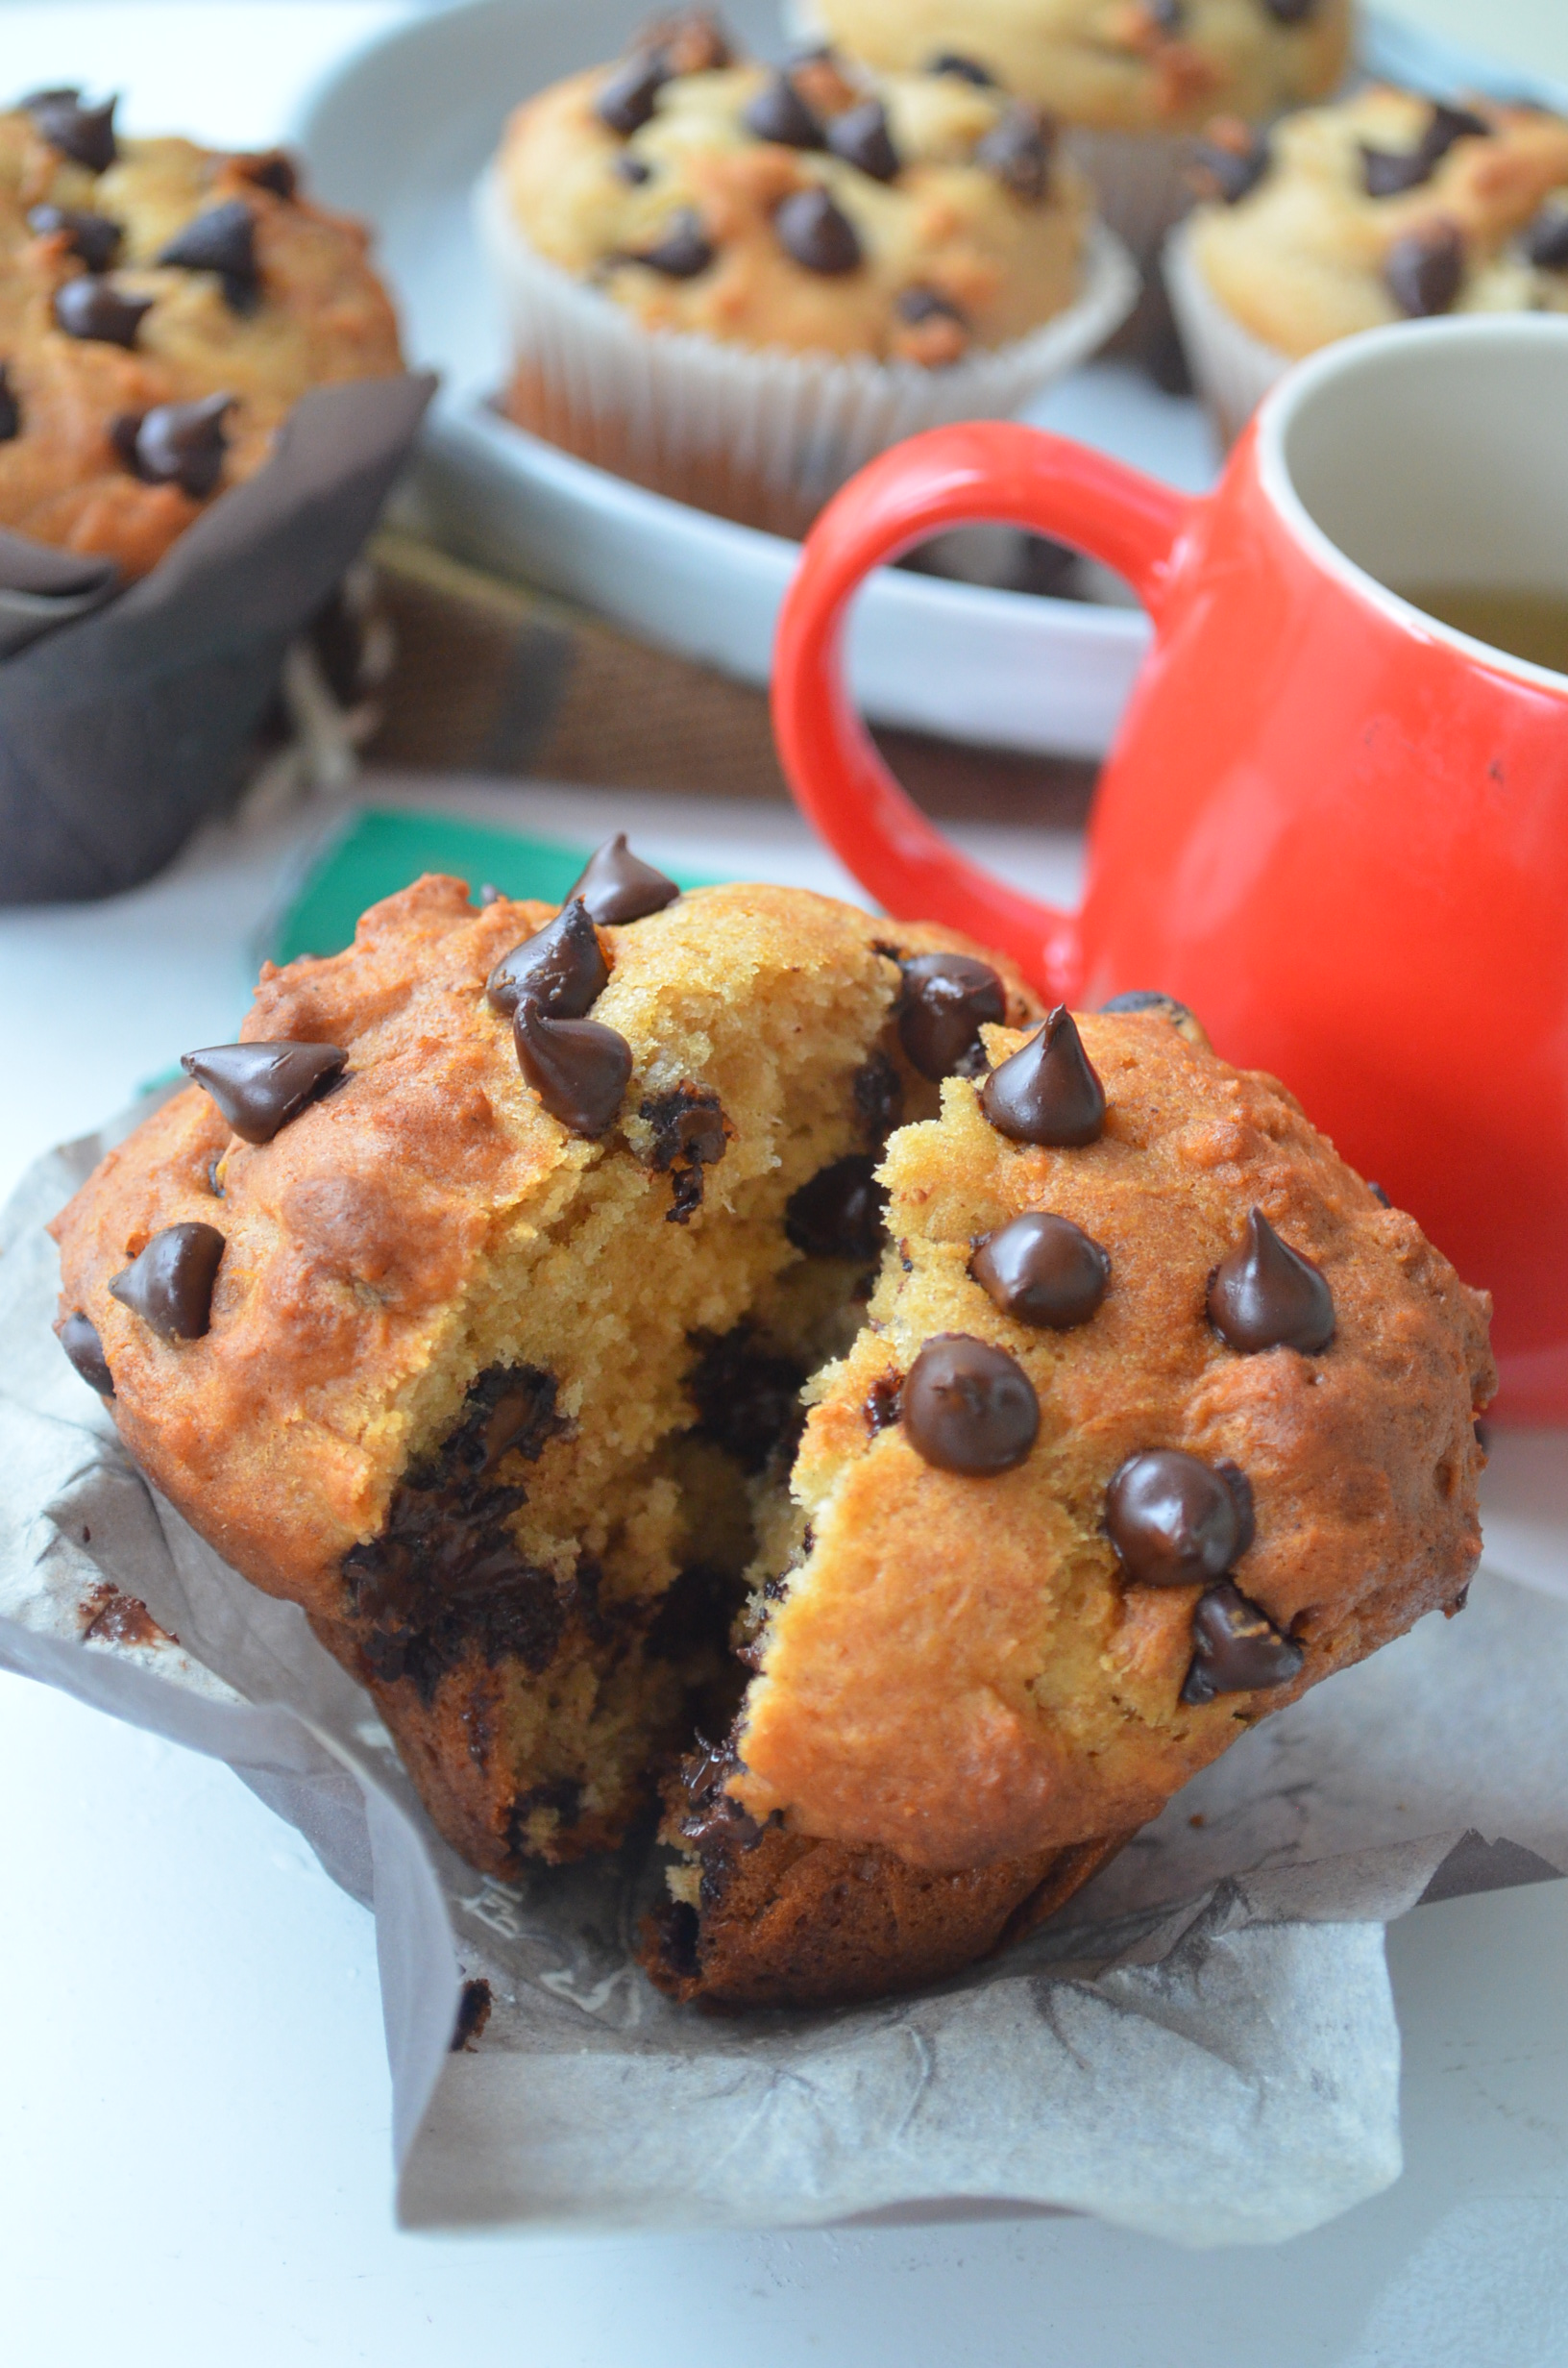 Brown Butter Chocolate Chip MUffins Recipe